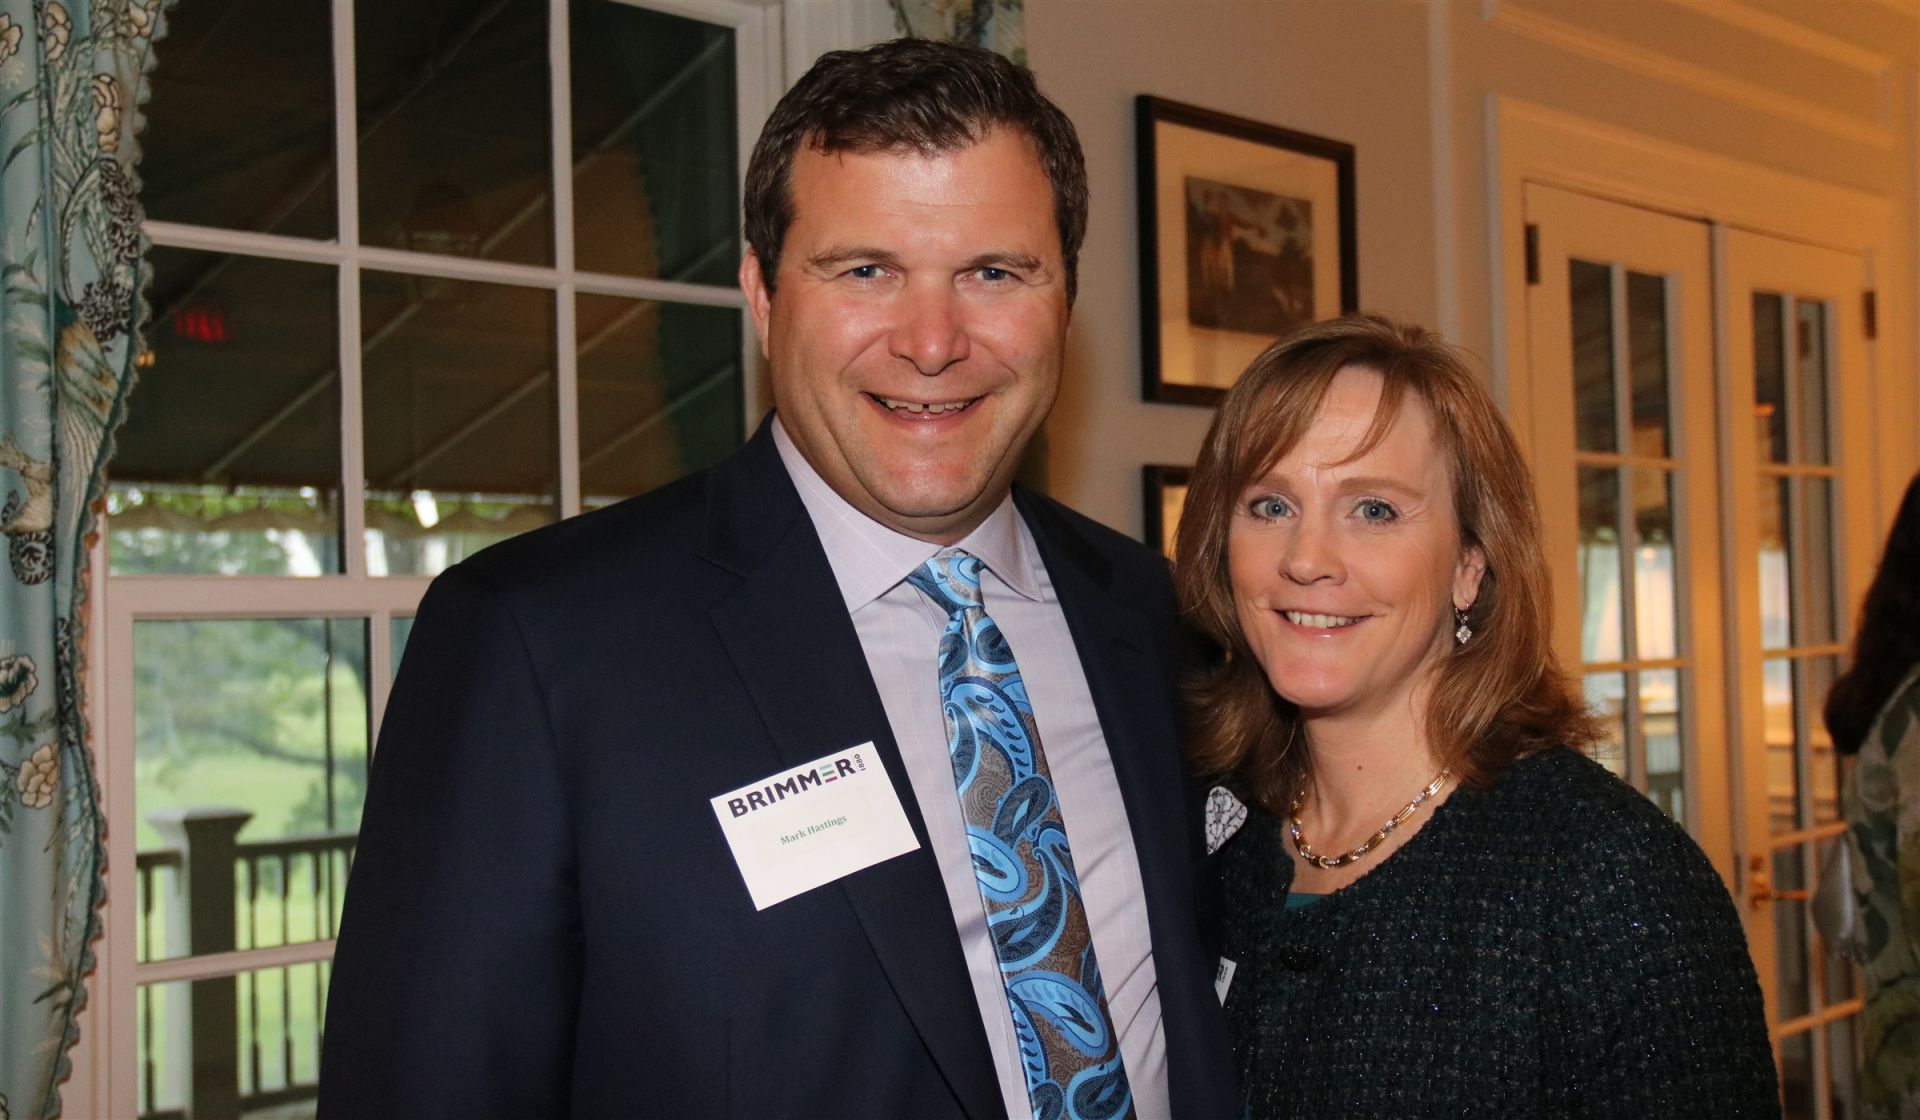 Mark Hastings and Trustee Lisa Hastings at the Leadership Donor Party.